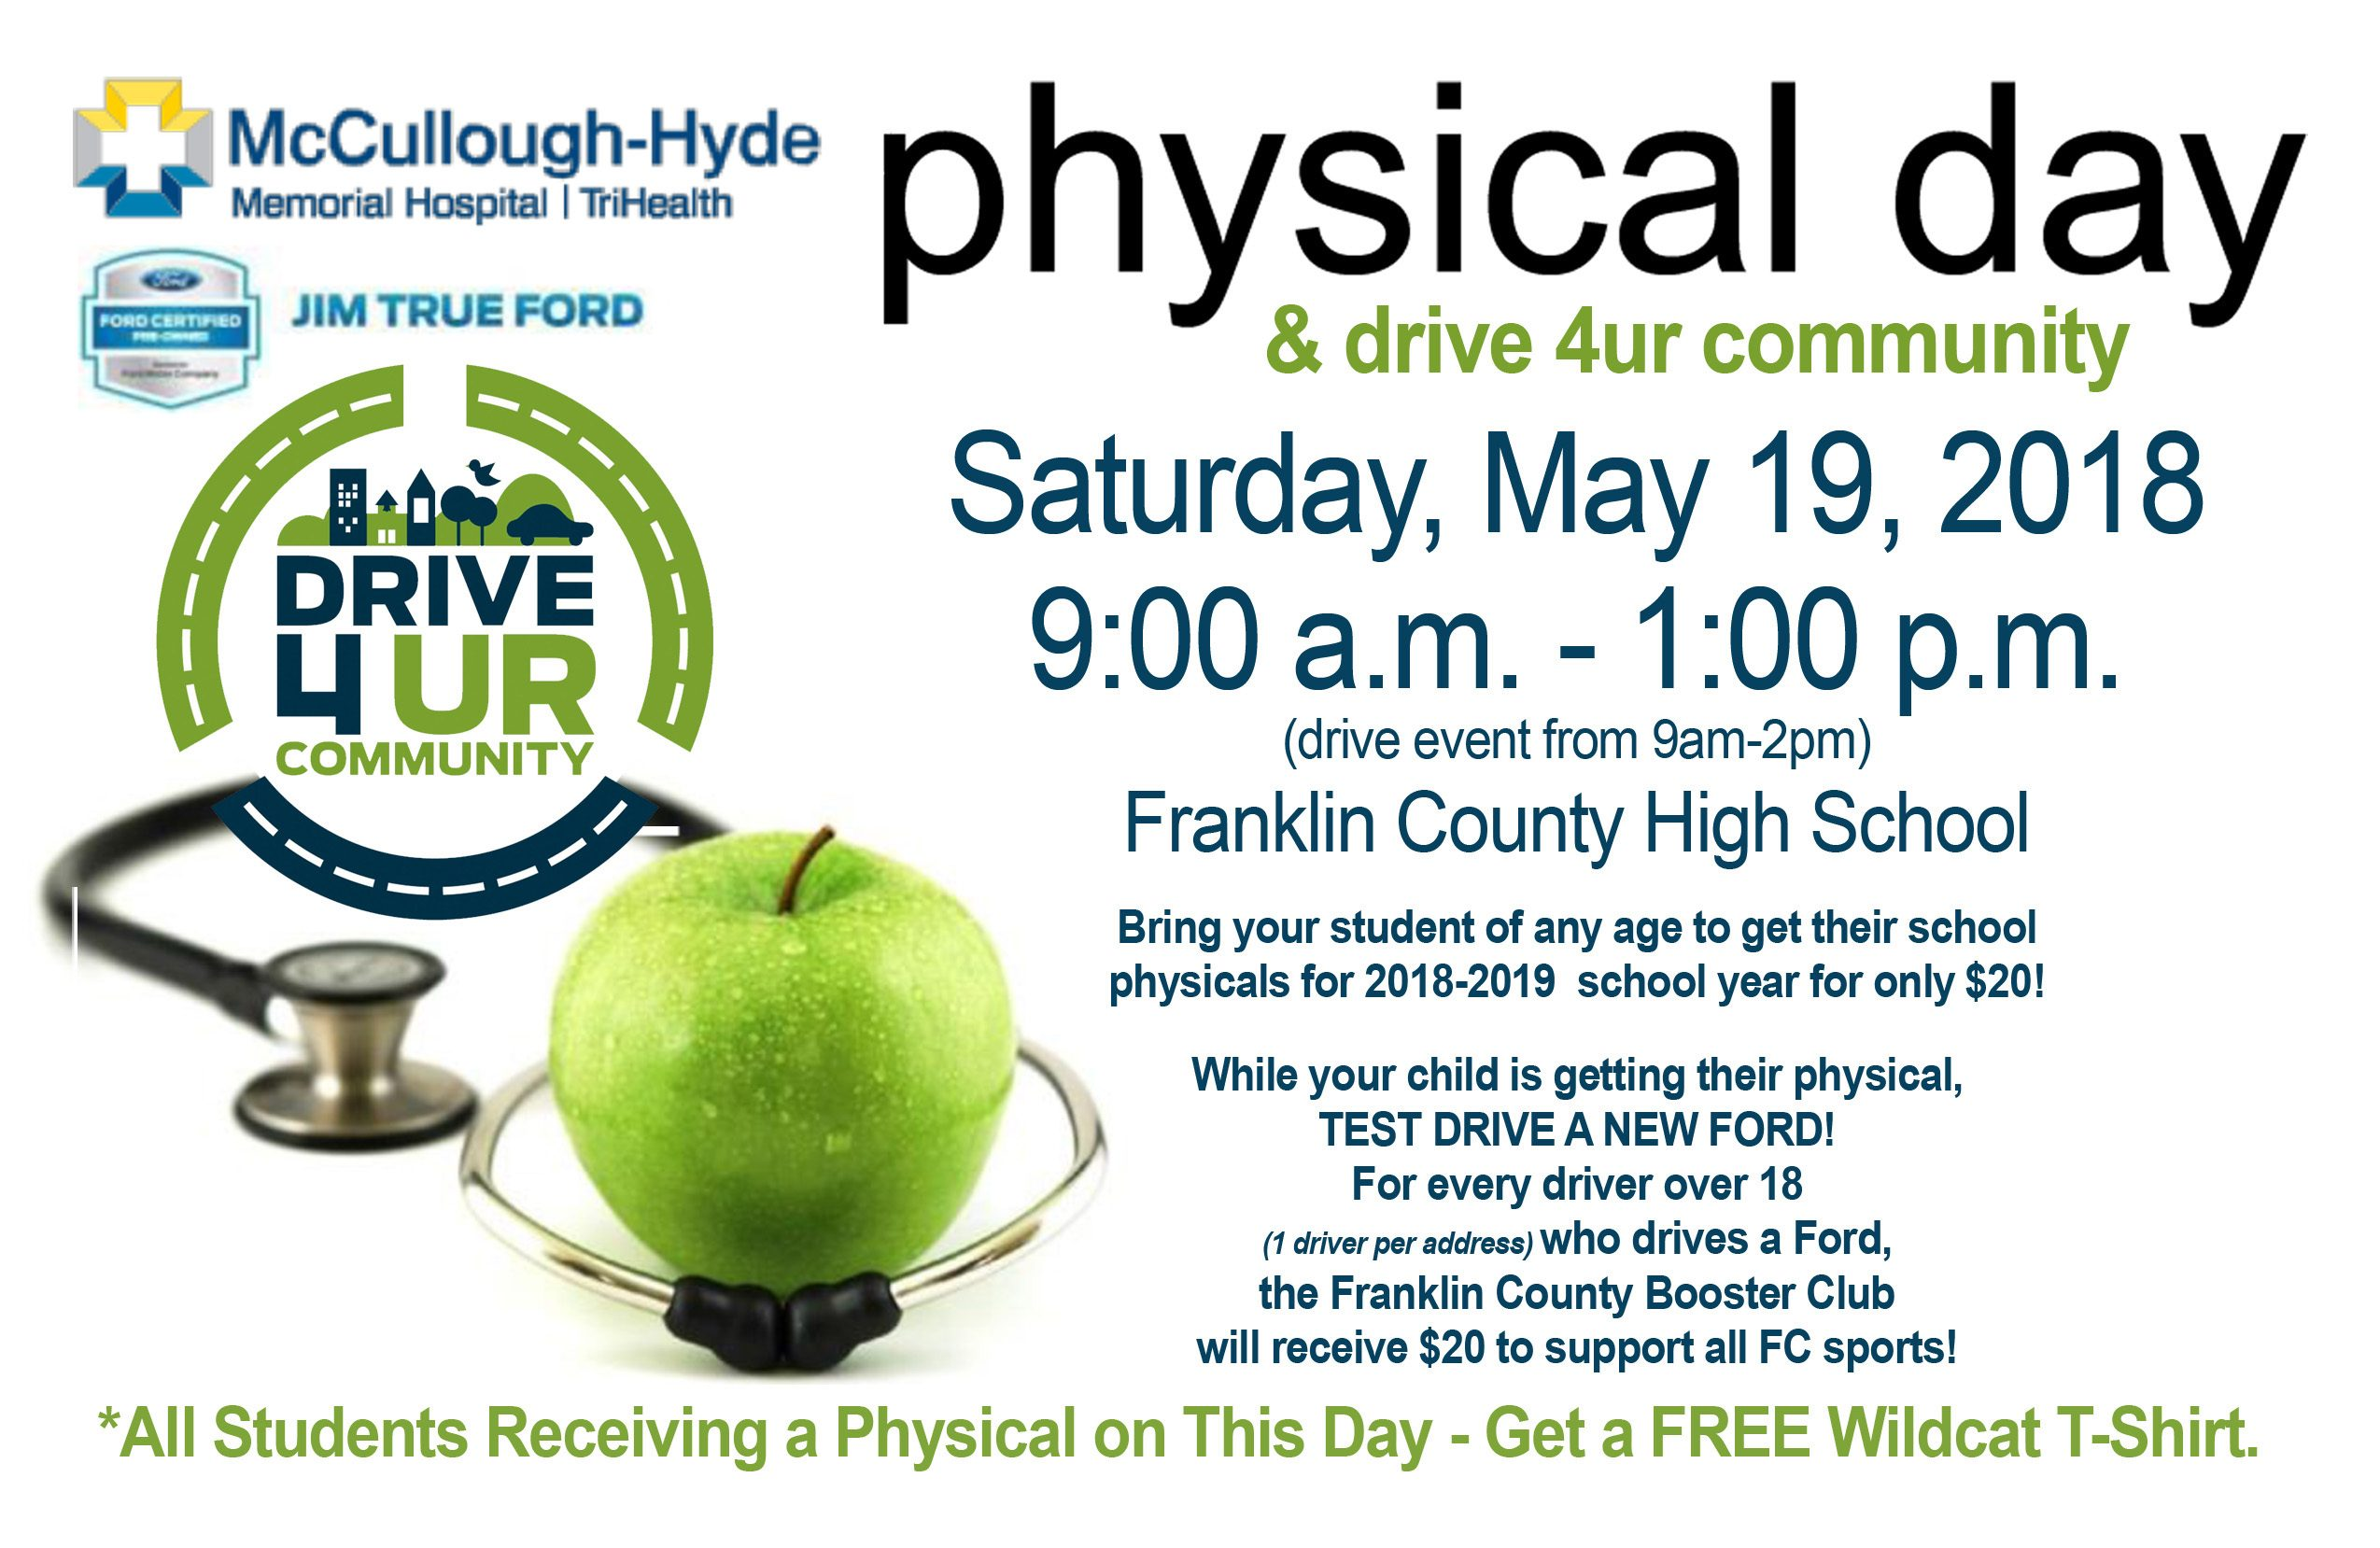 PHYSICAL DAY AND DRIVE FOR YOUR COMMUNITY:  SATURDAY, MAY 19TH